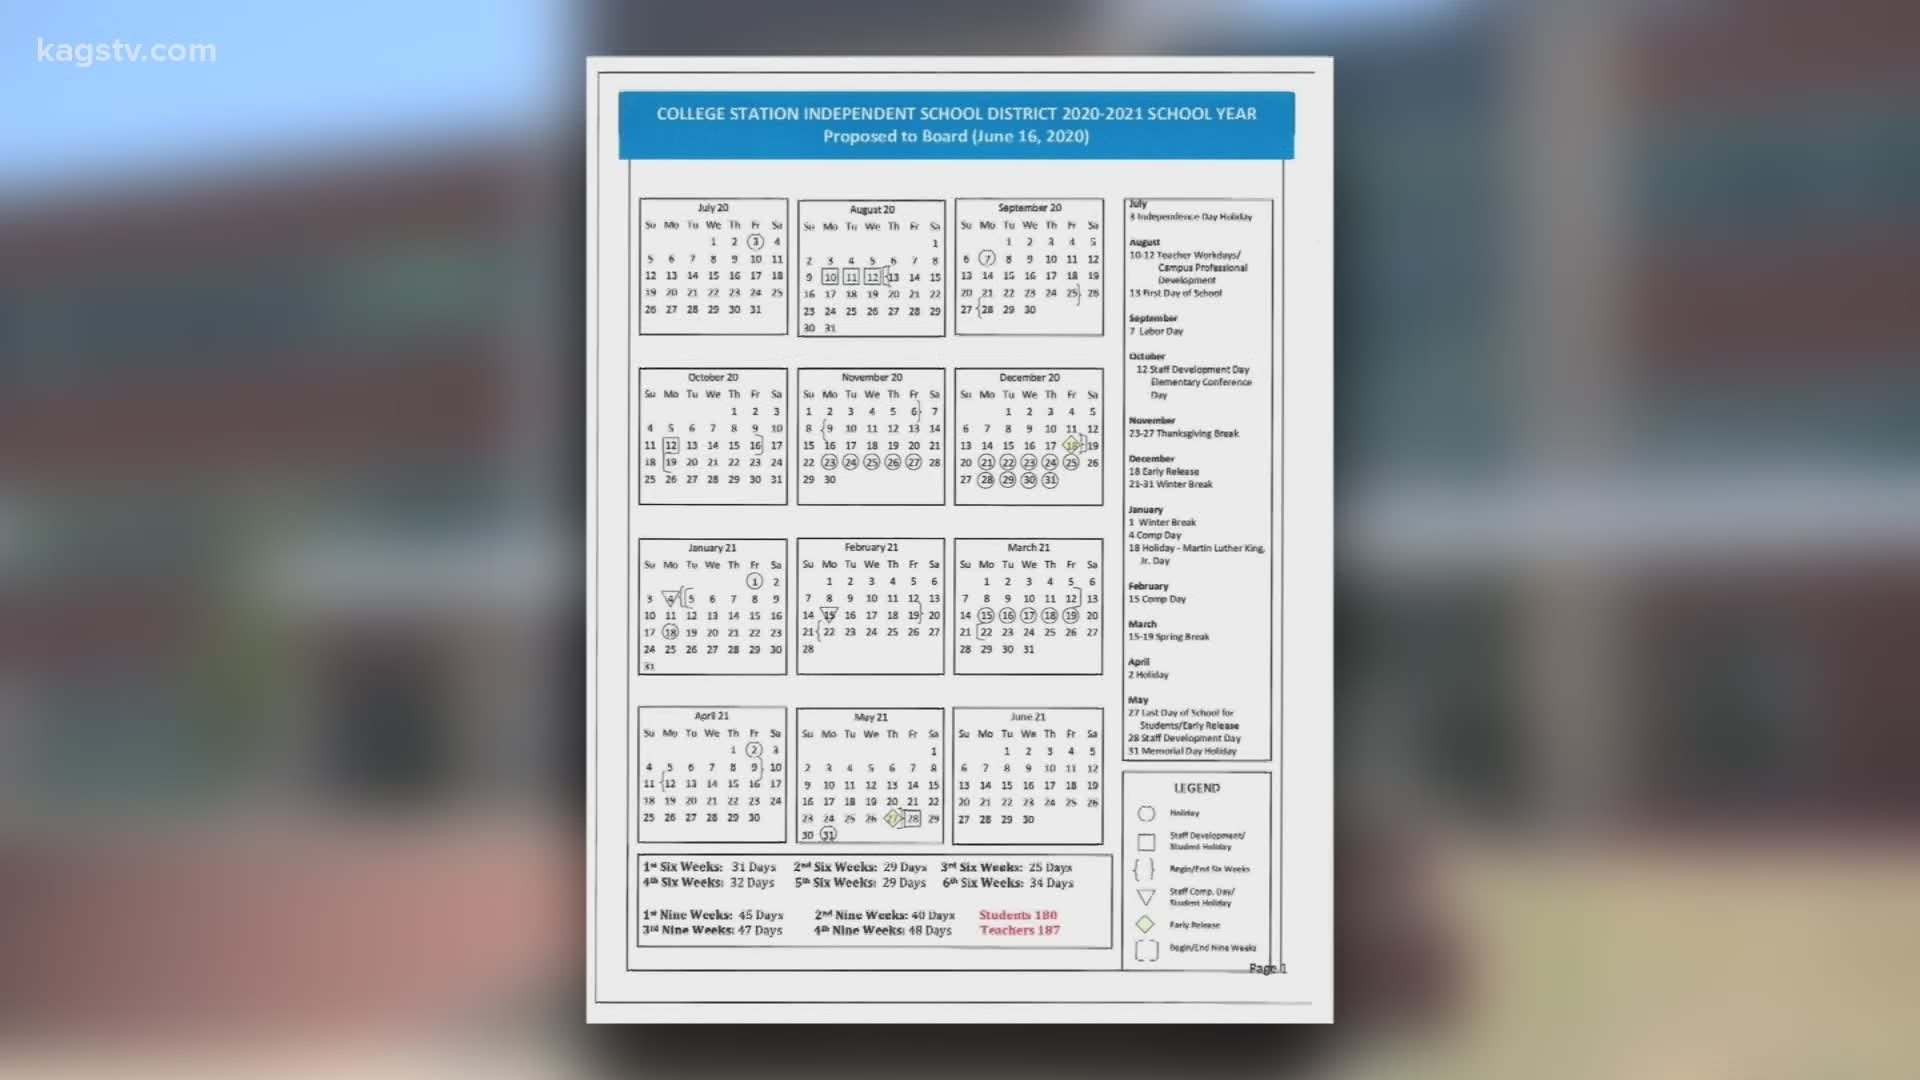 College Station Isd Adds More Days To 2020-2021 Calendar